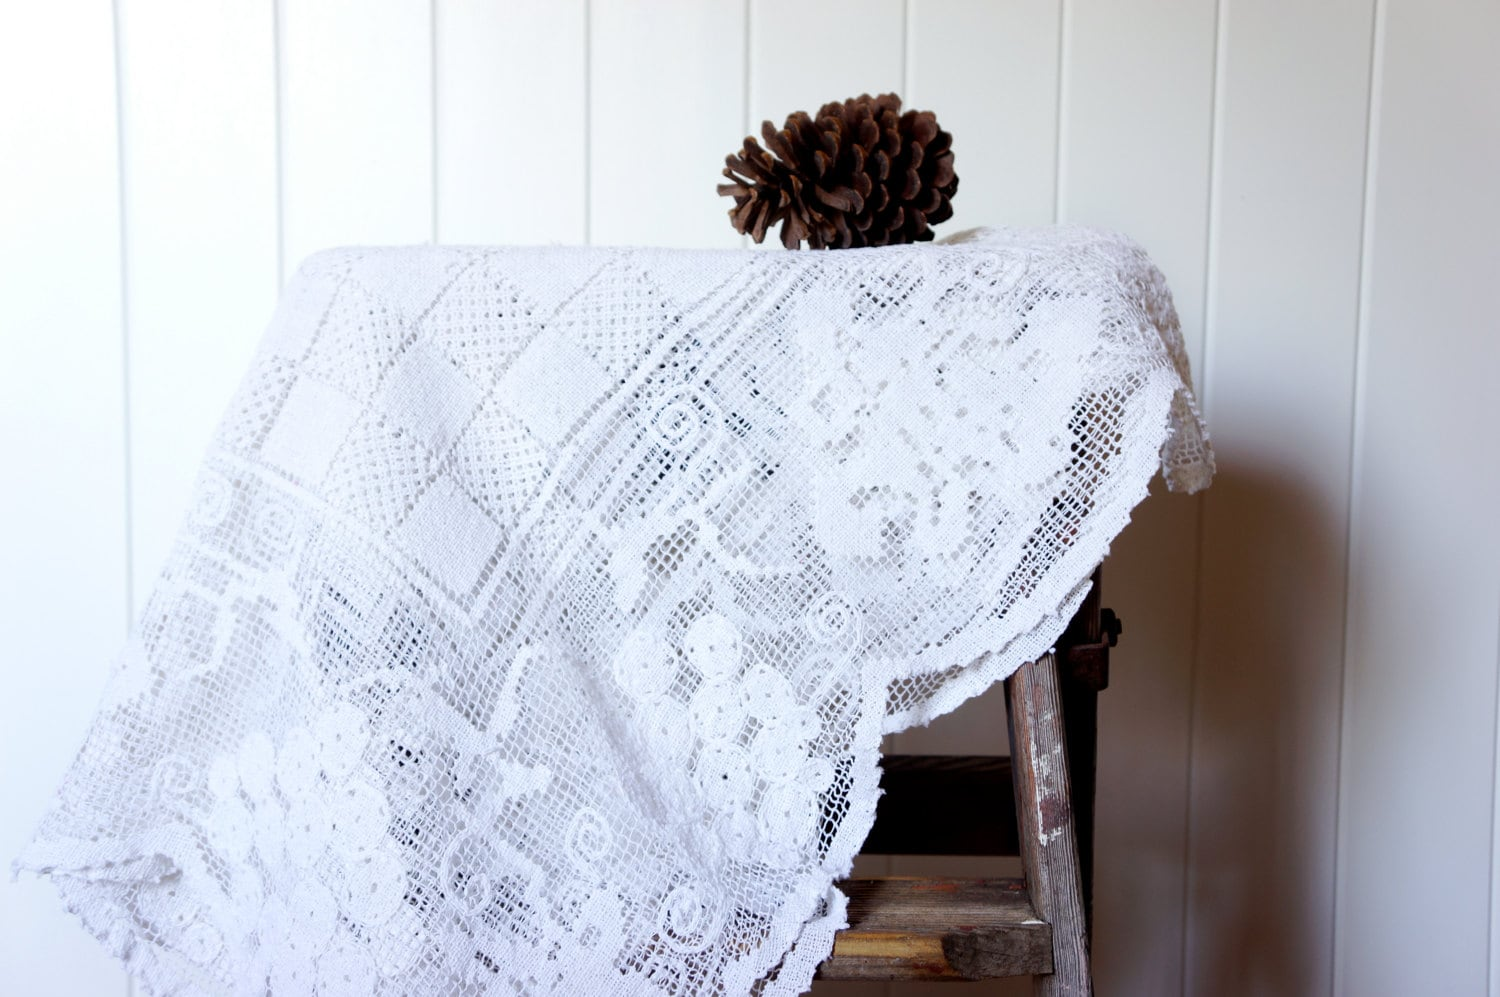 Vintage handmade lace tablecloth - AlbertandGrace